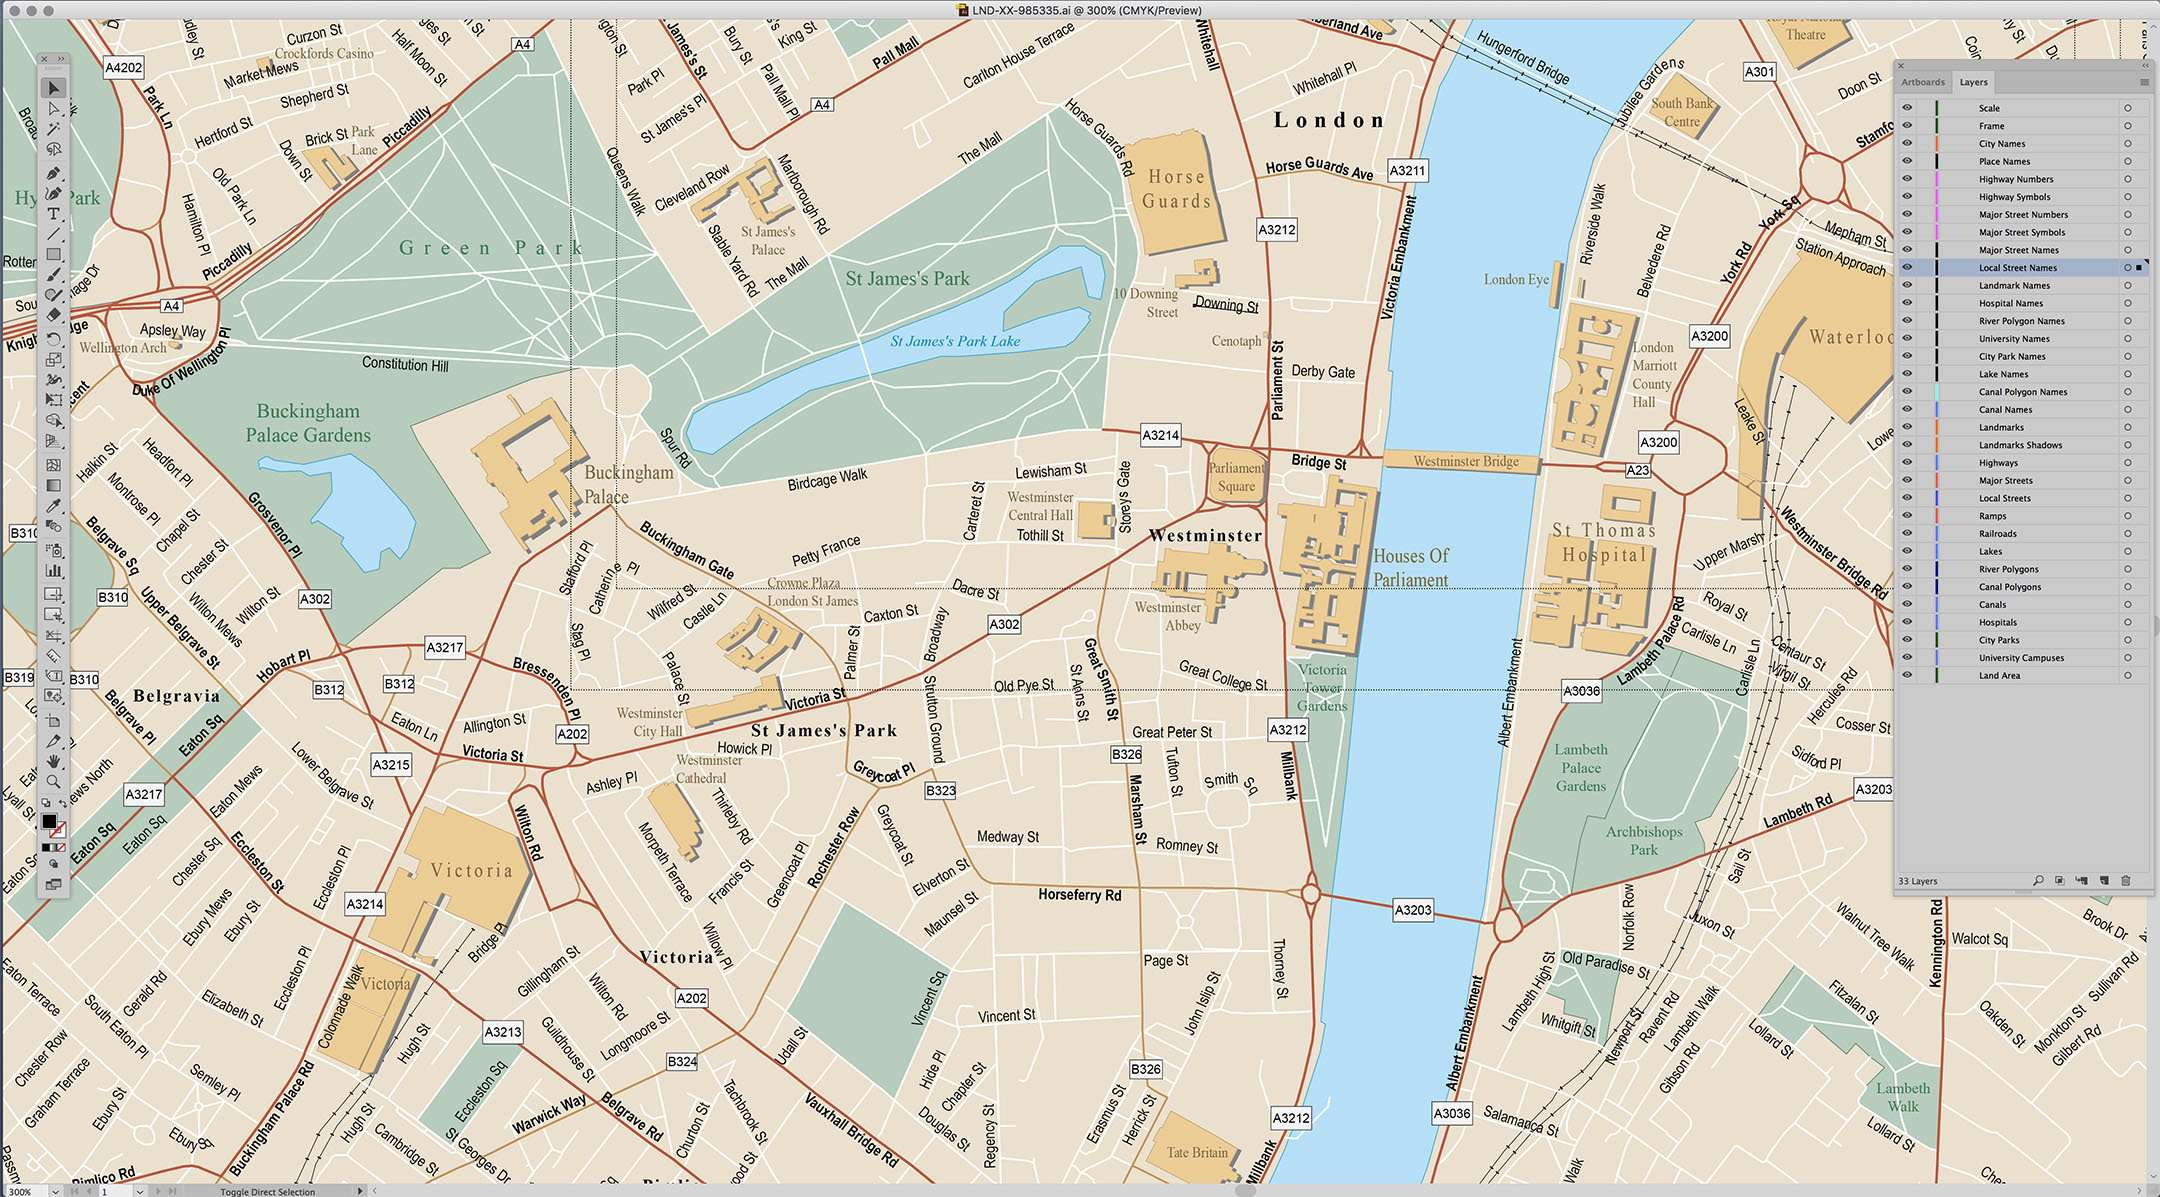 London In England Map.London England Map City Center With All Local Streets